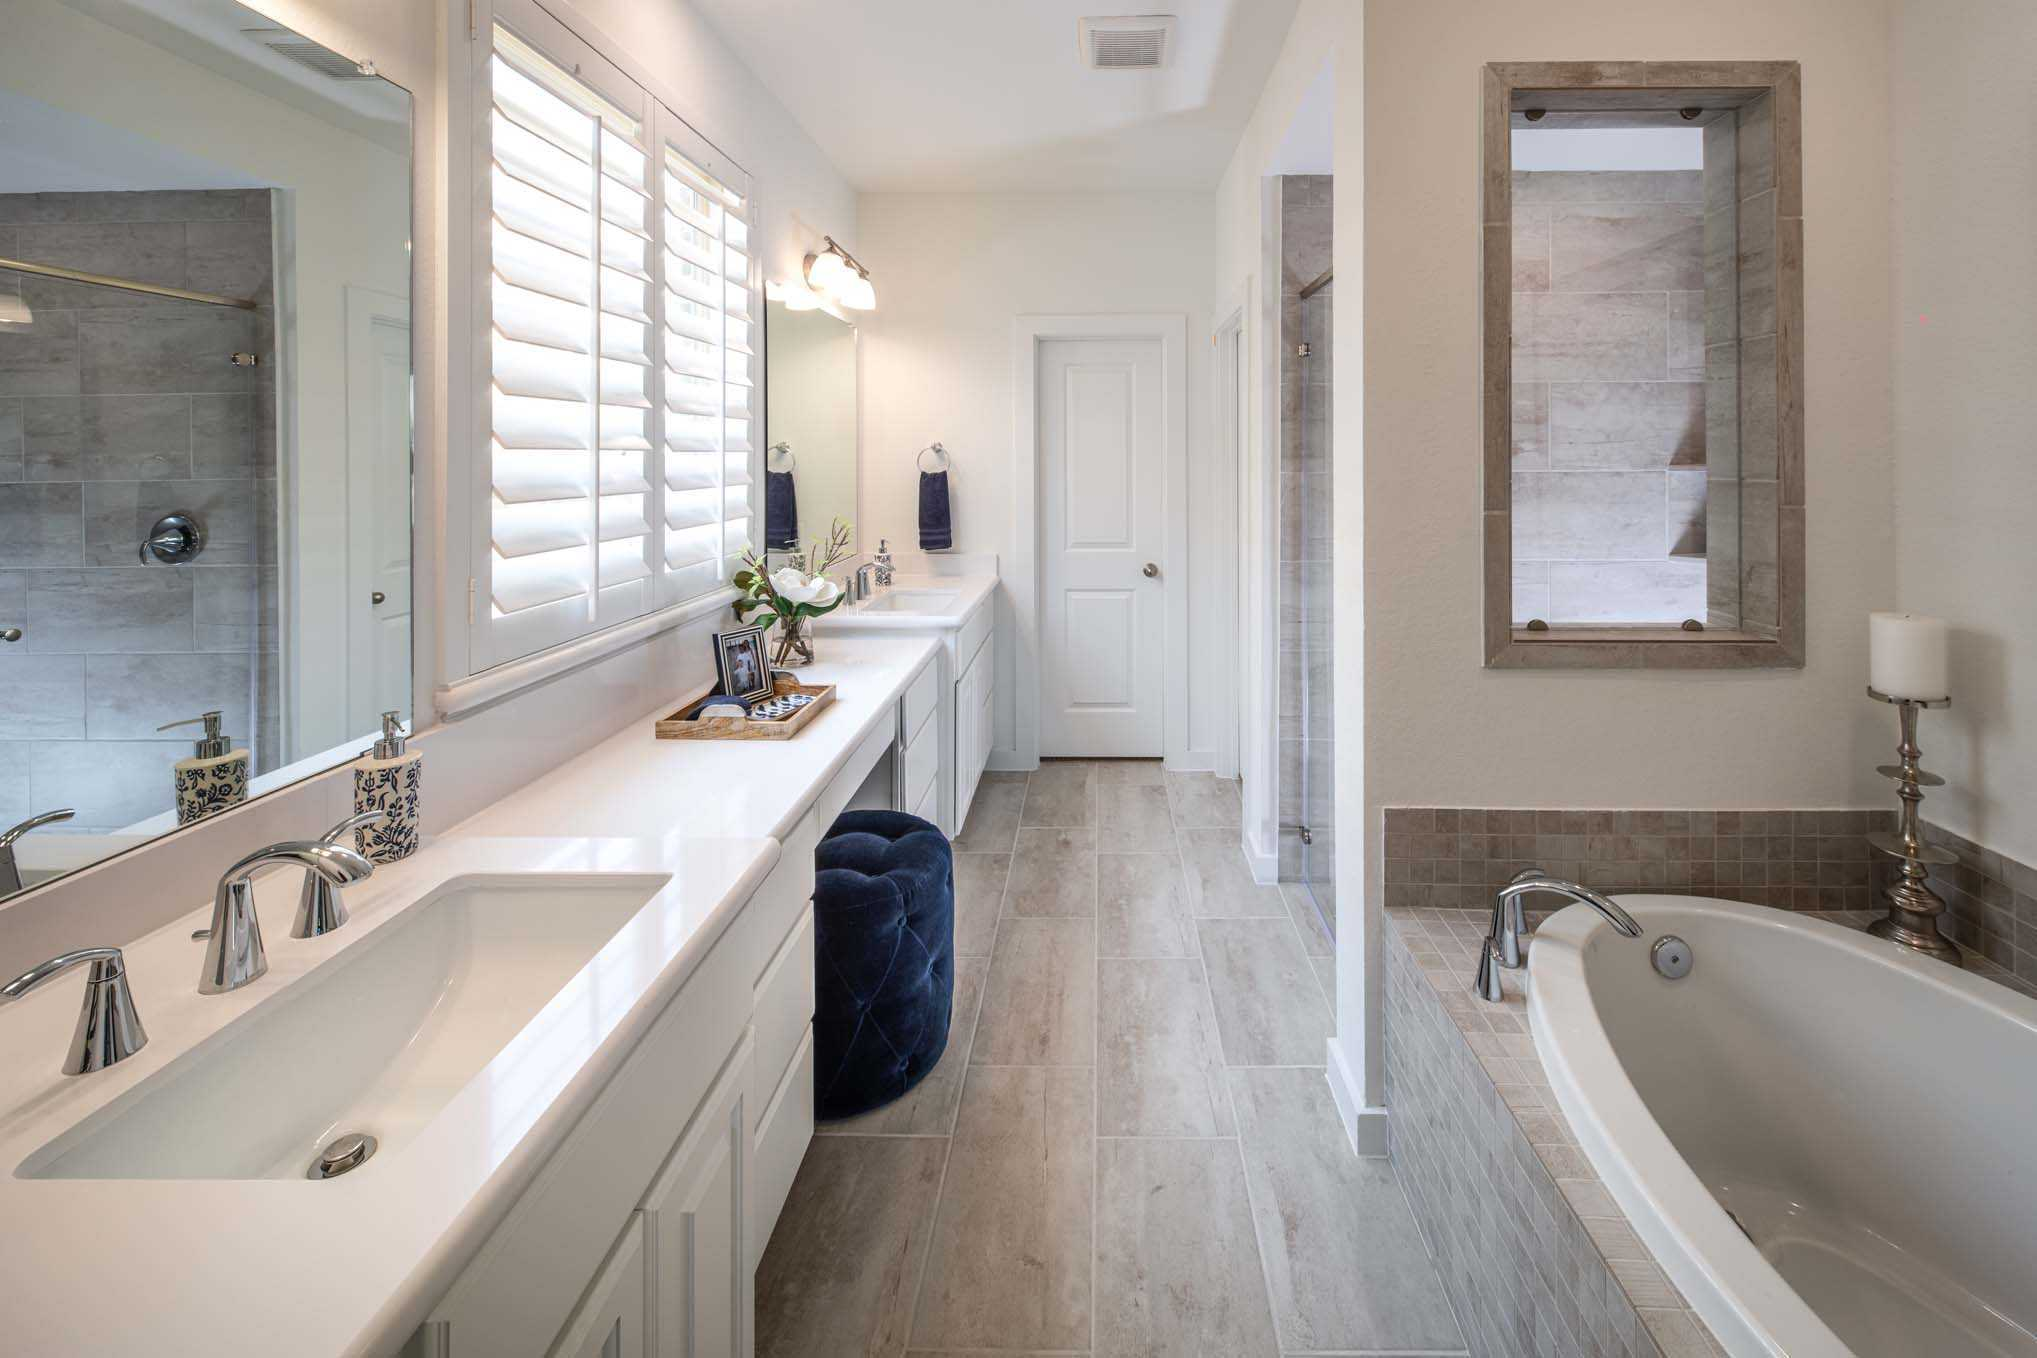 Bathroom featured in the Plan 556H By Highland Homes in Dallas, TX